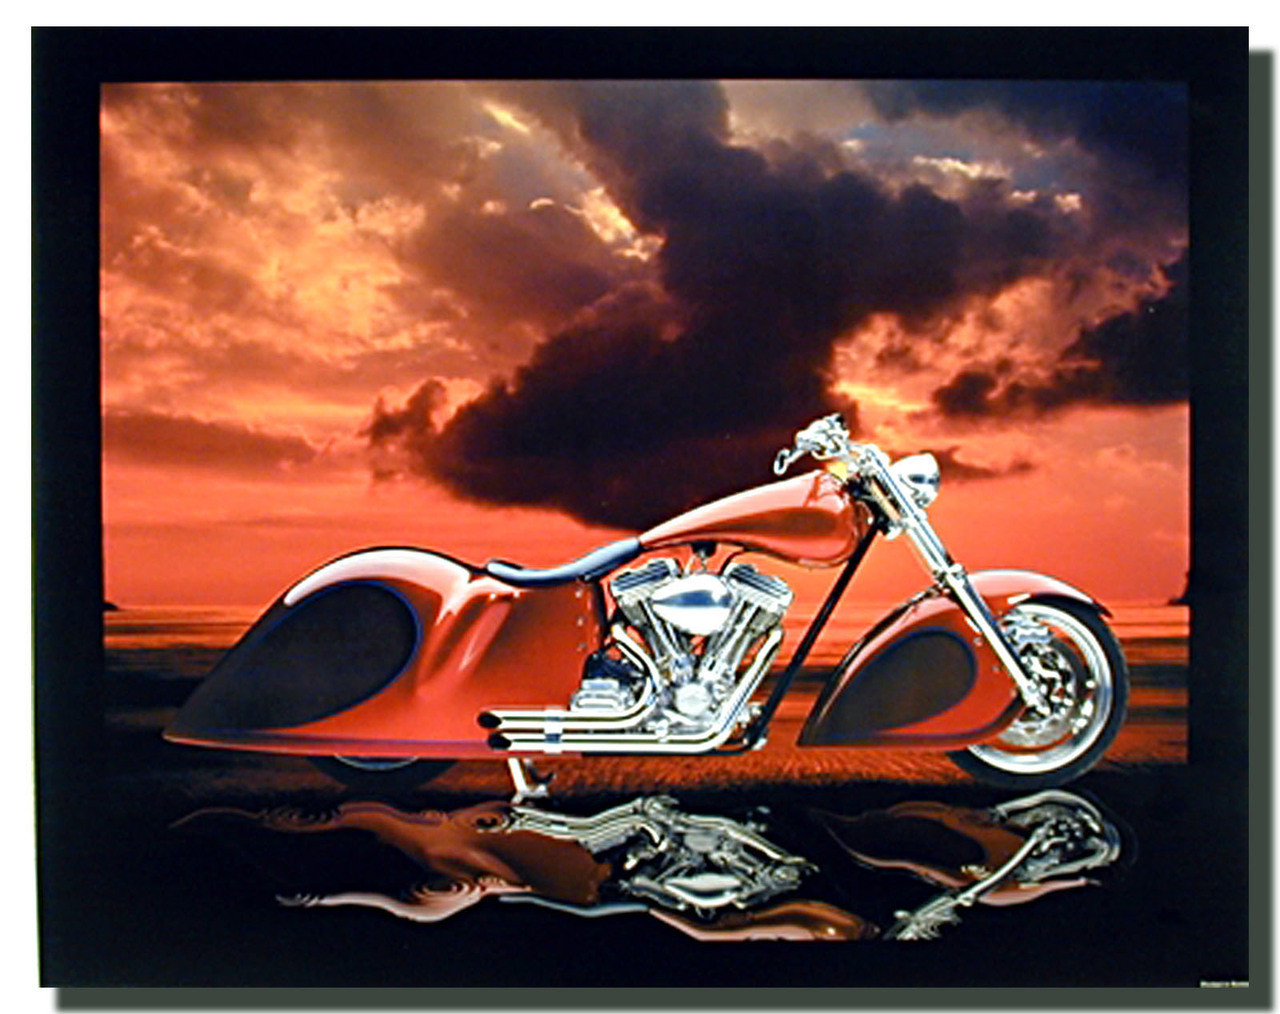 16x20 Poster Of Motorcycle on Highway Riders Bike Art Print Wall Decor